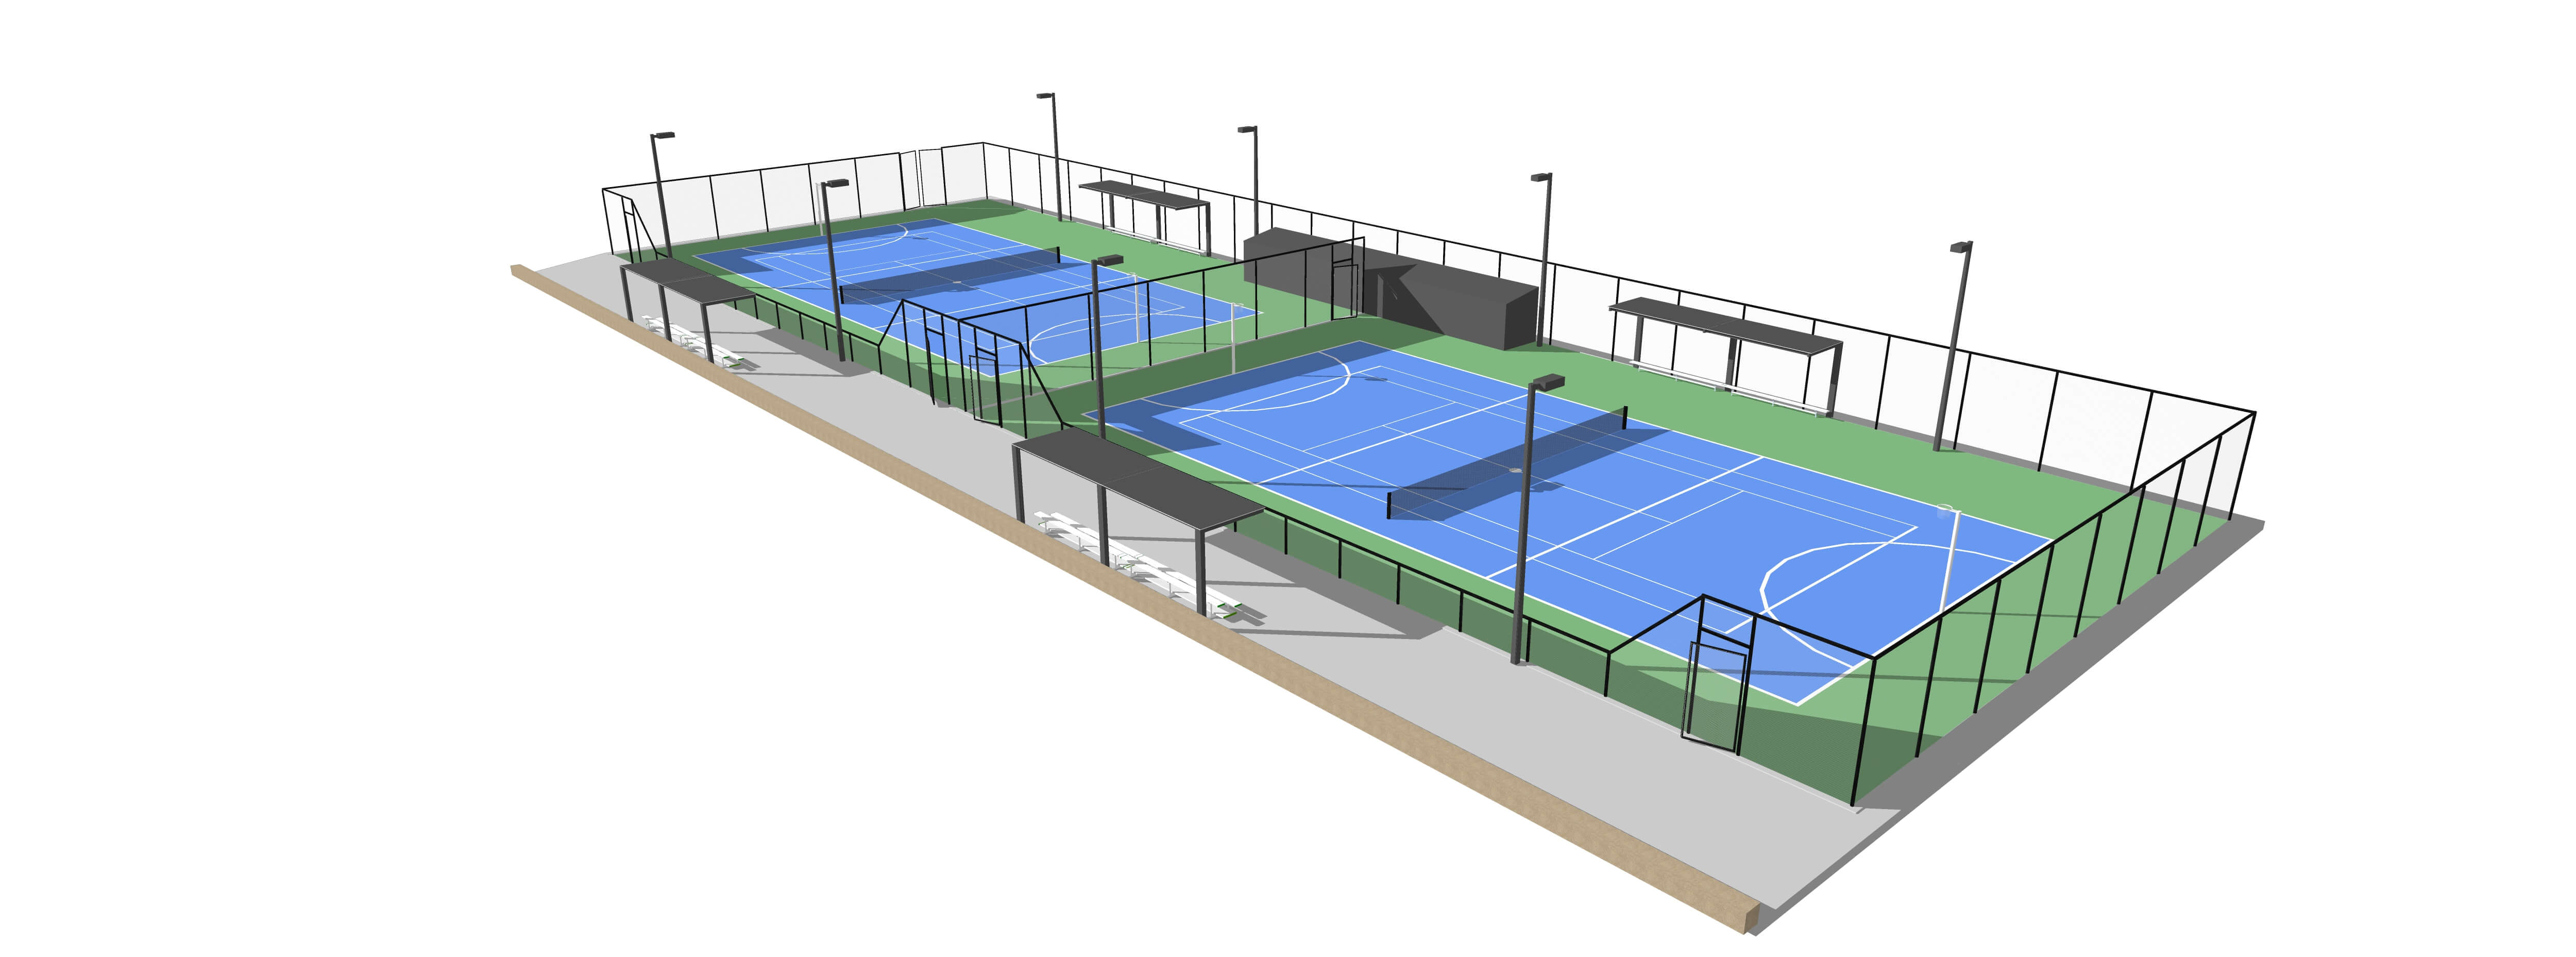 3D visualisation of tennis courts